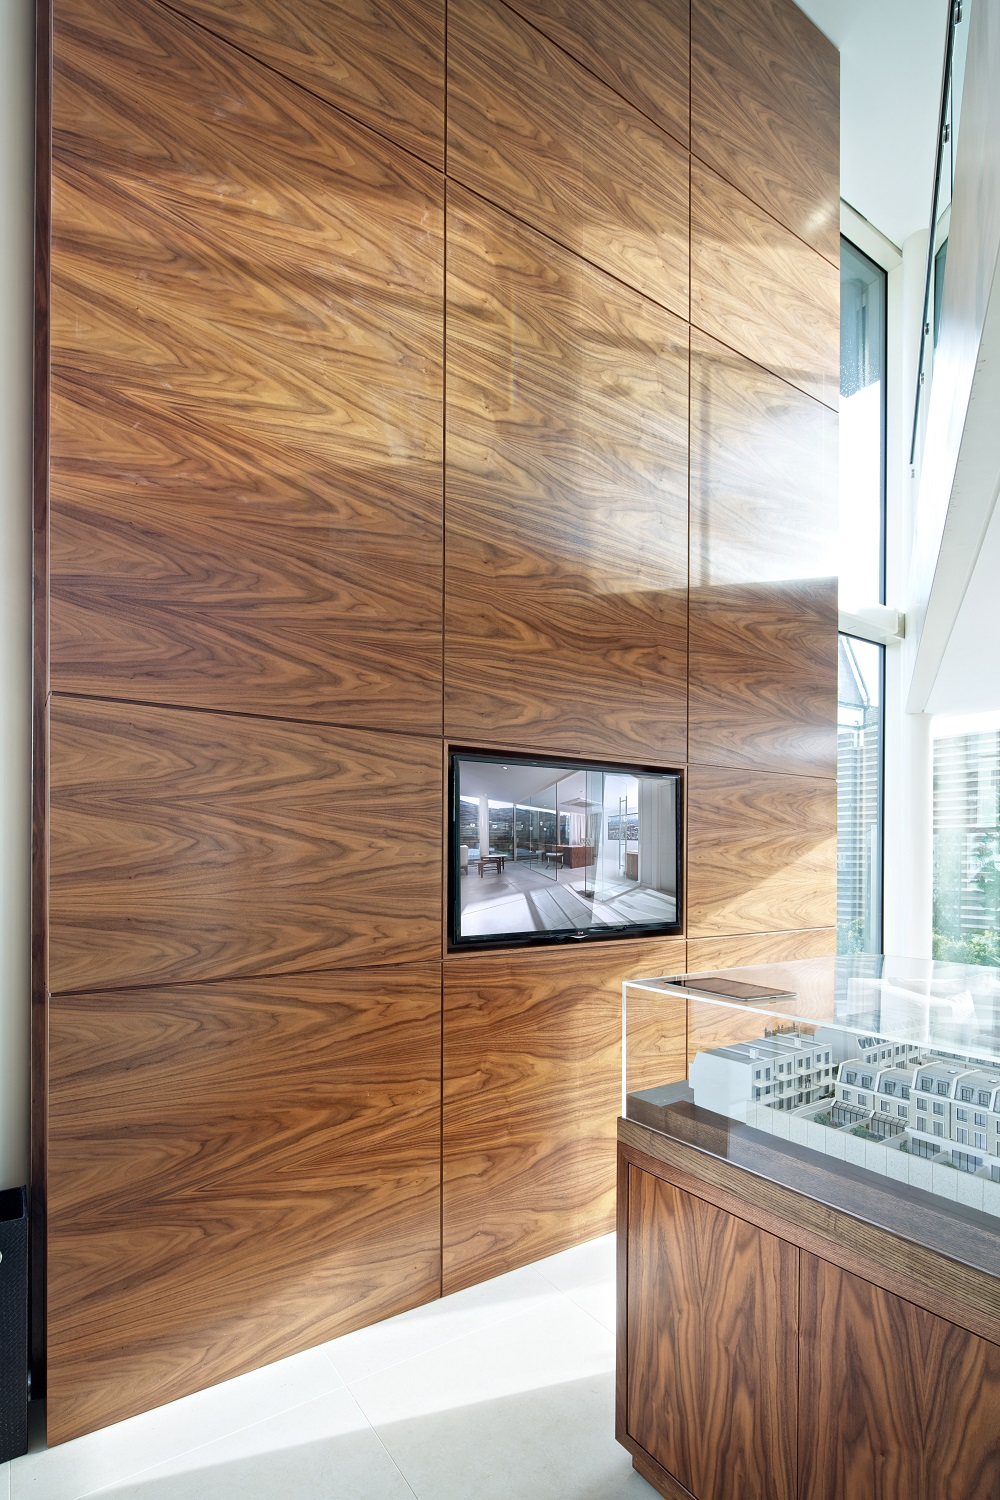 Seven Metre High Wall clad in Walnut Panelling